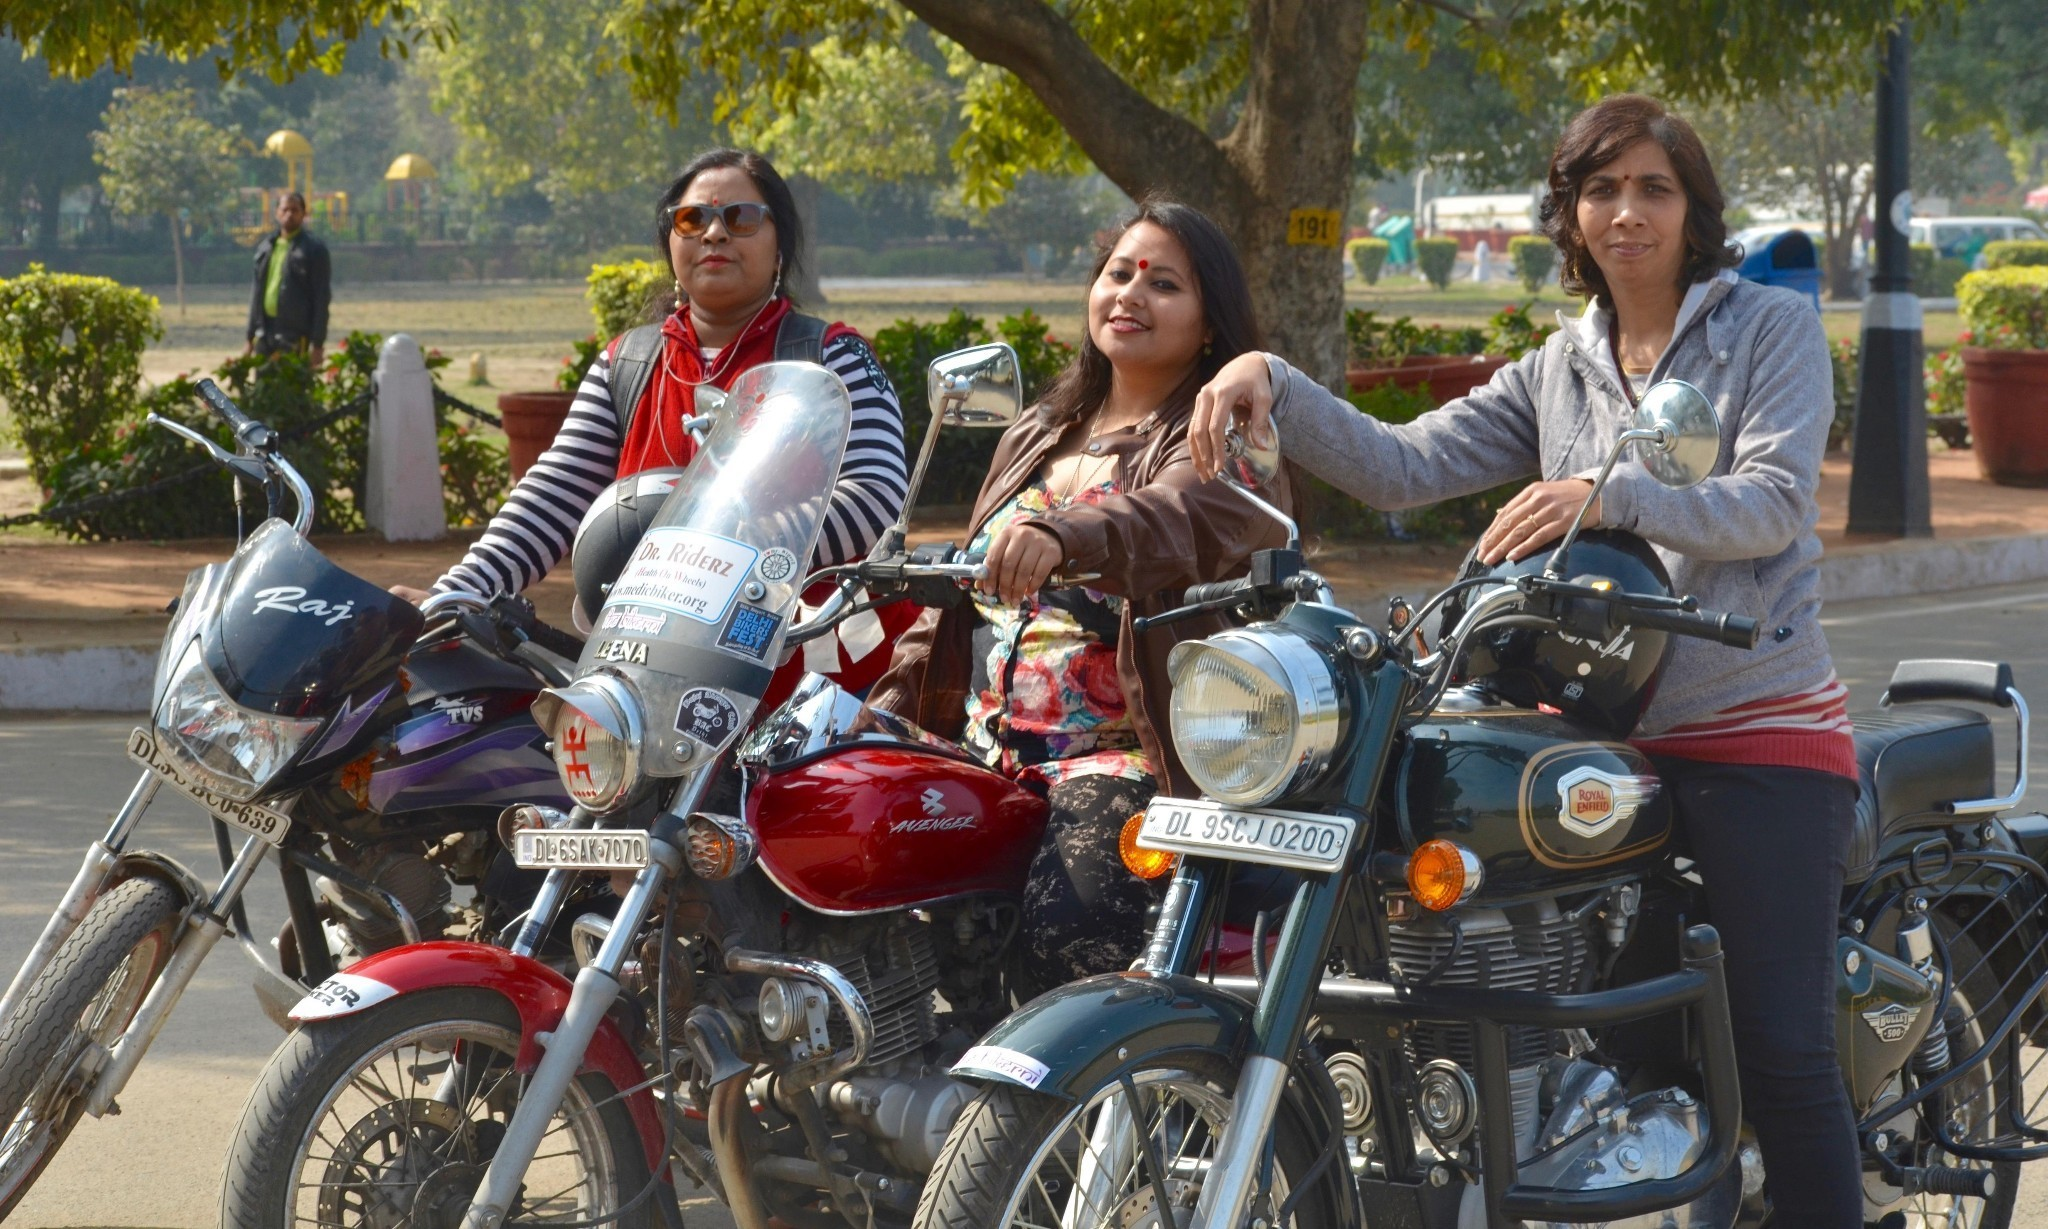 Rebels with a cause: the female biker clubs reclaiming Delhi's public space